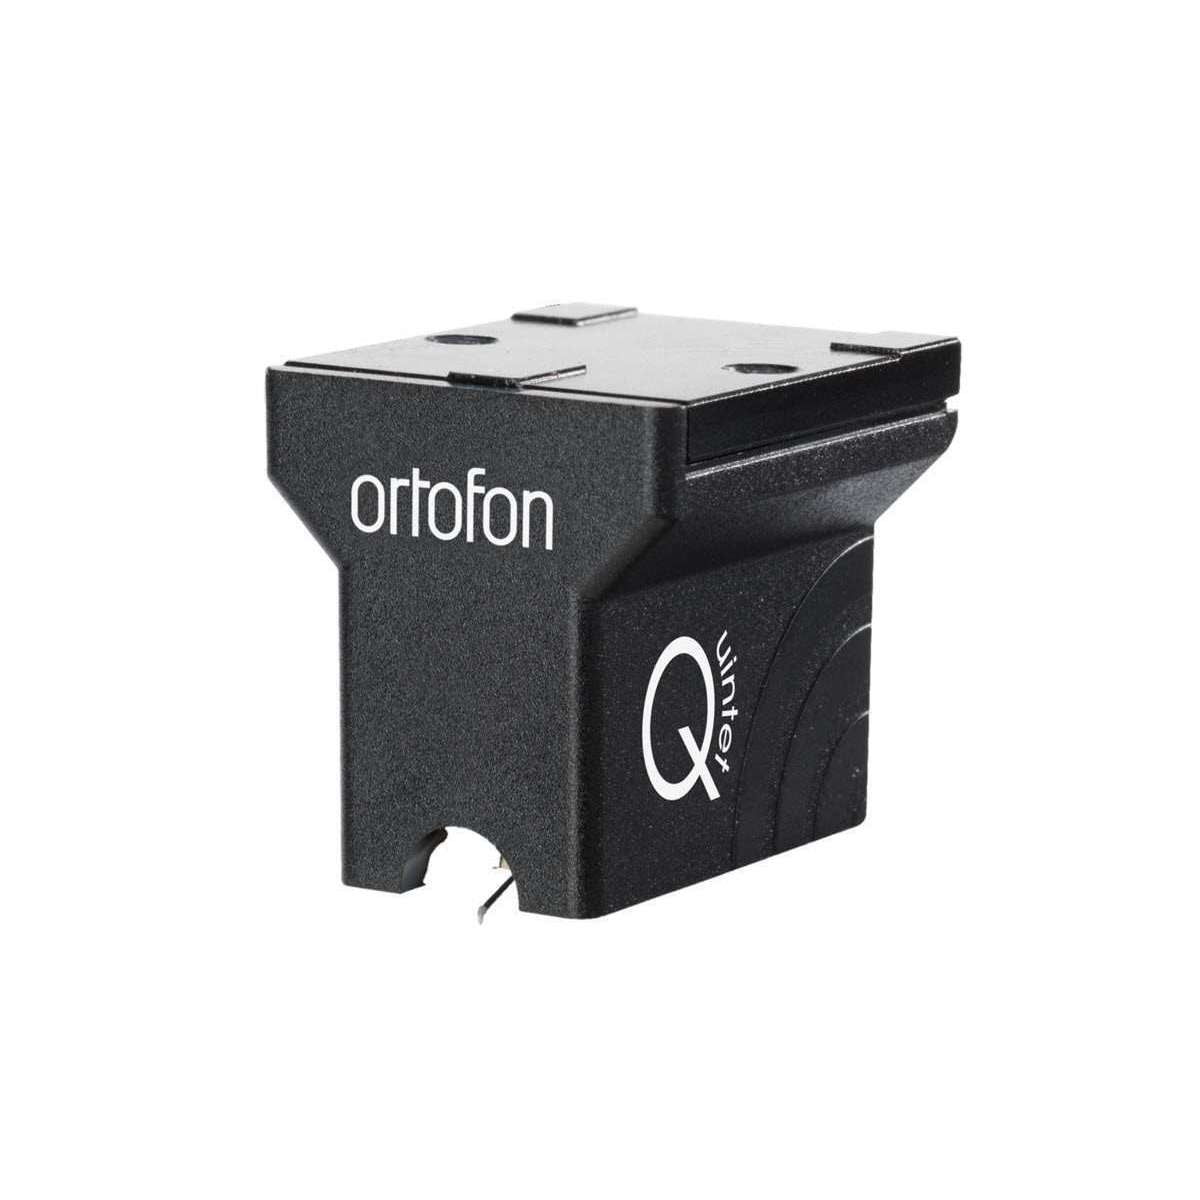 Ortofon Quintet Black S Moving Coil Cartridge - Call SpatialOnline 0345 557 7334